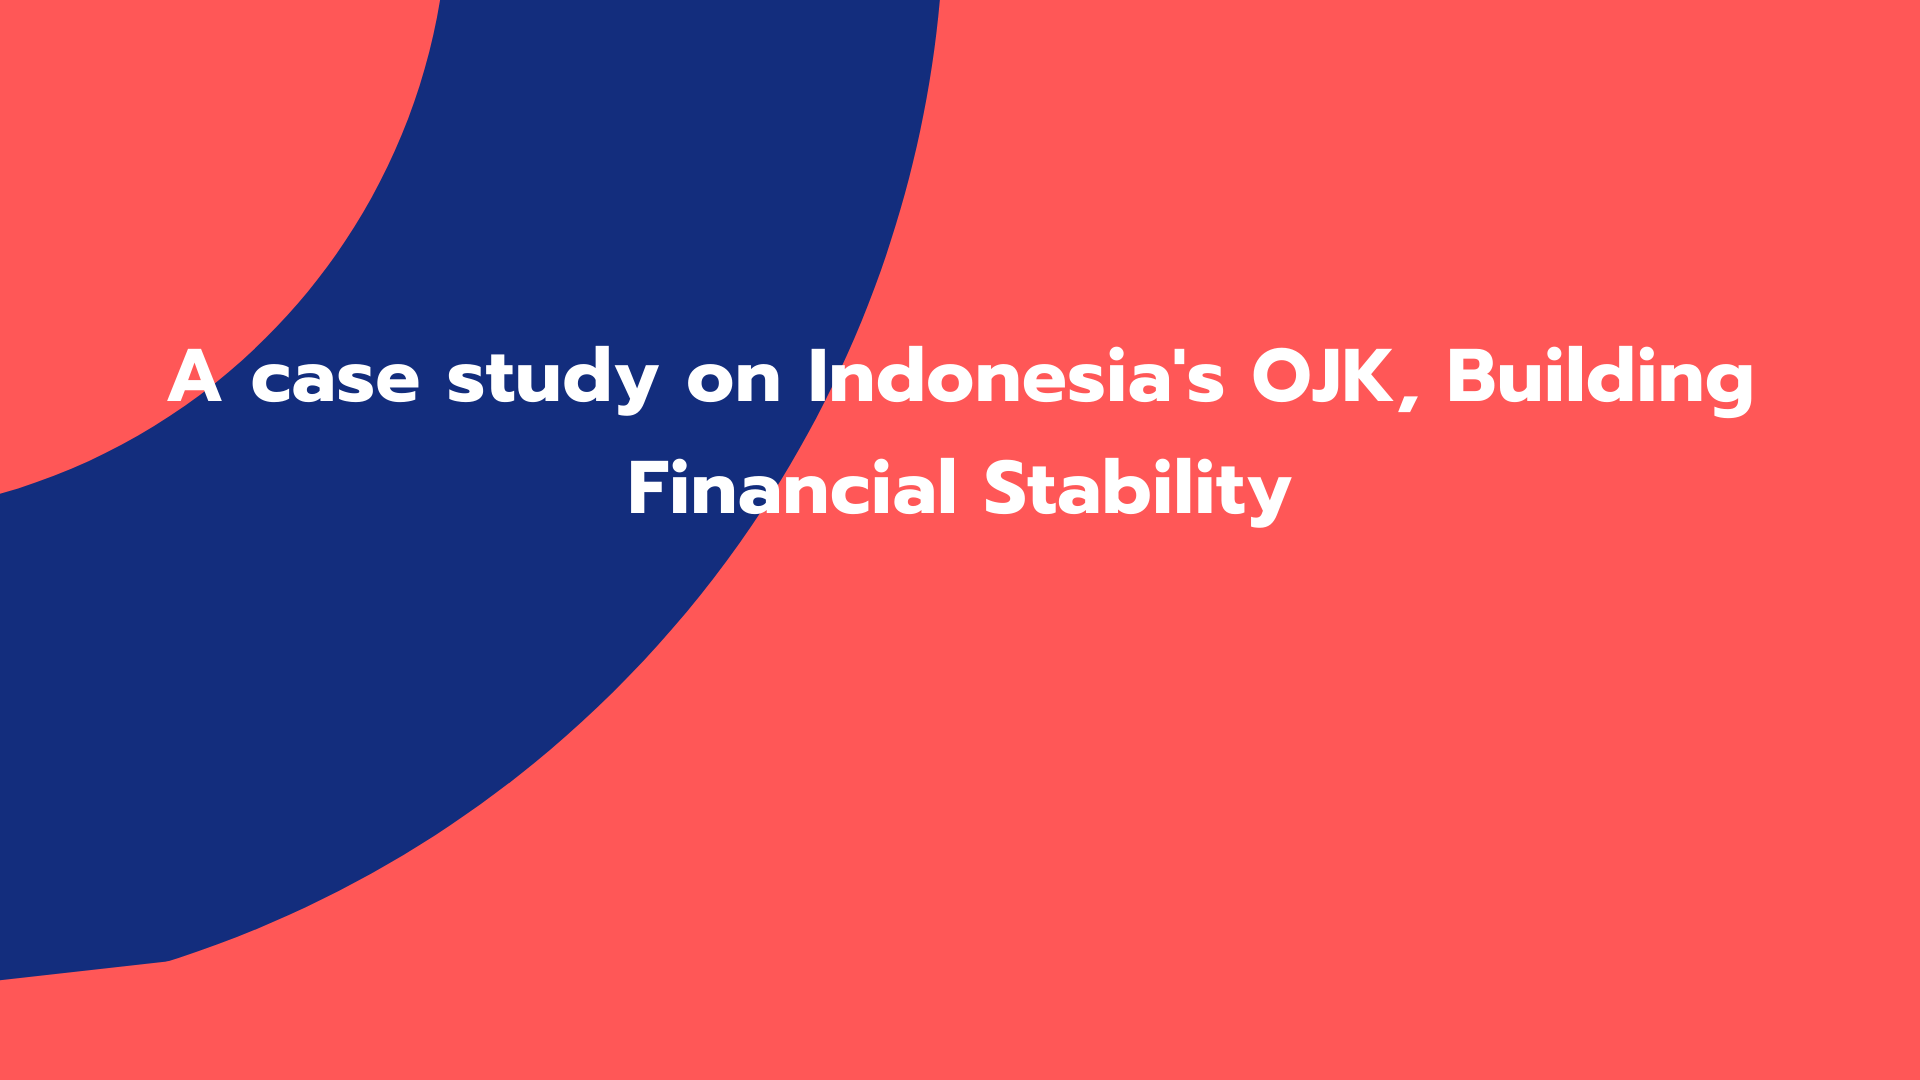 A case study on Indonesia's OJK, Building Financial Stability